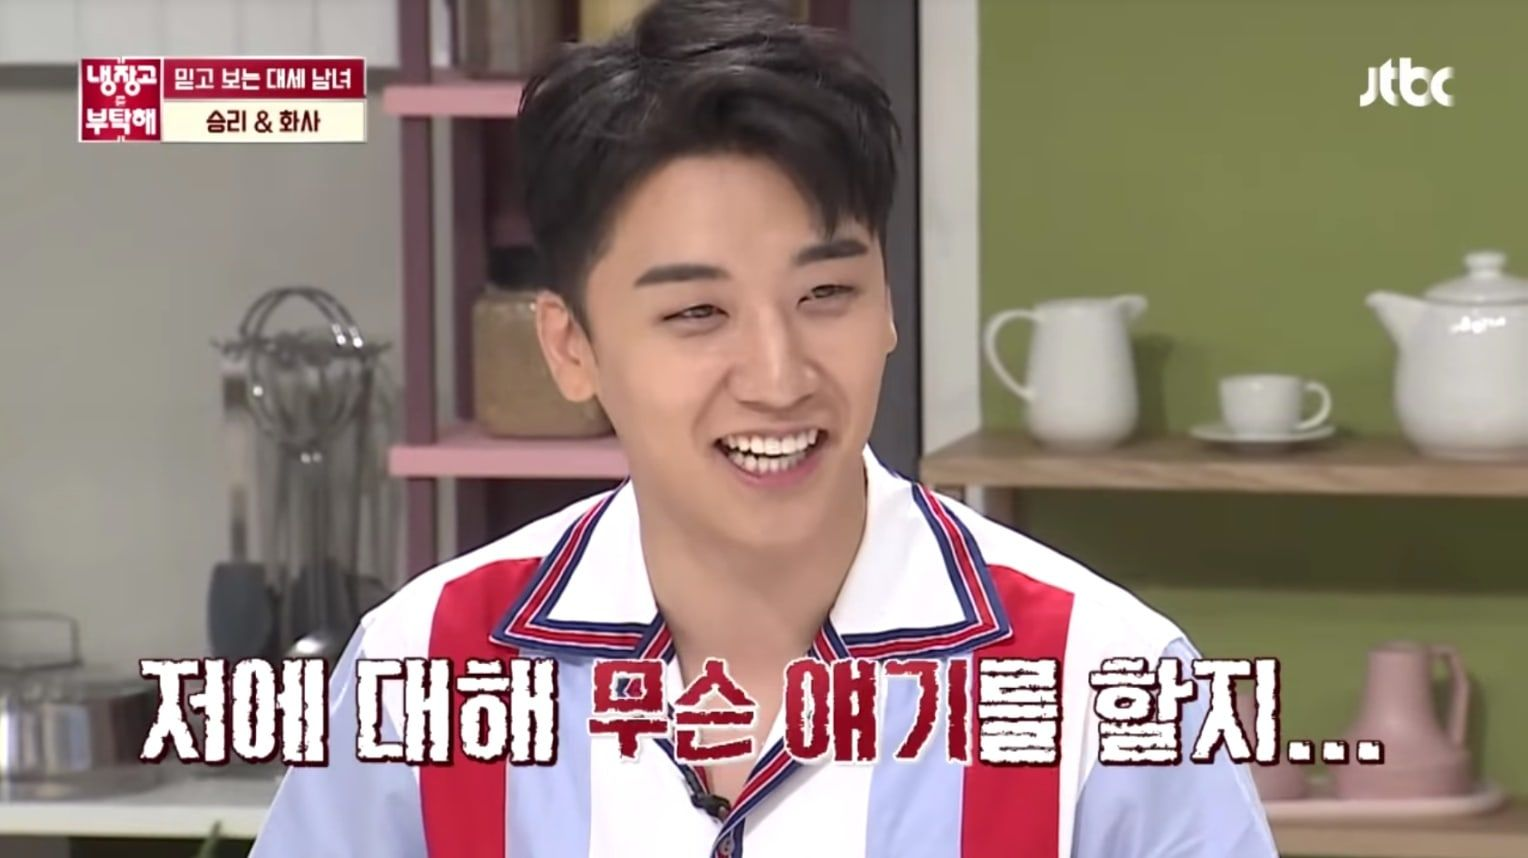 Seungri On How Yang Hyun Suk Treats Him Differently Now And His Recent Talk With Taeyang